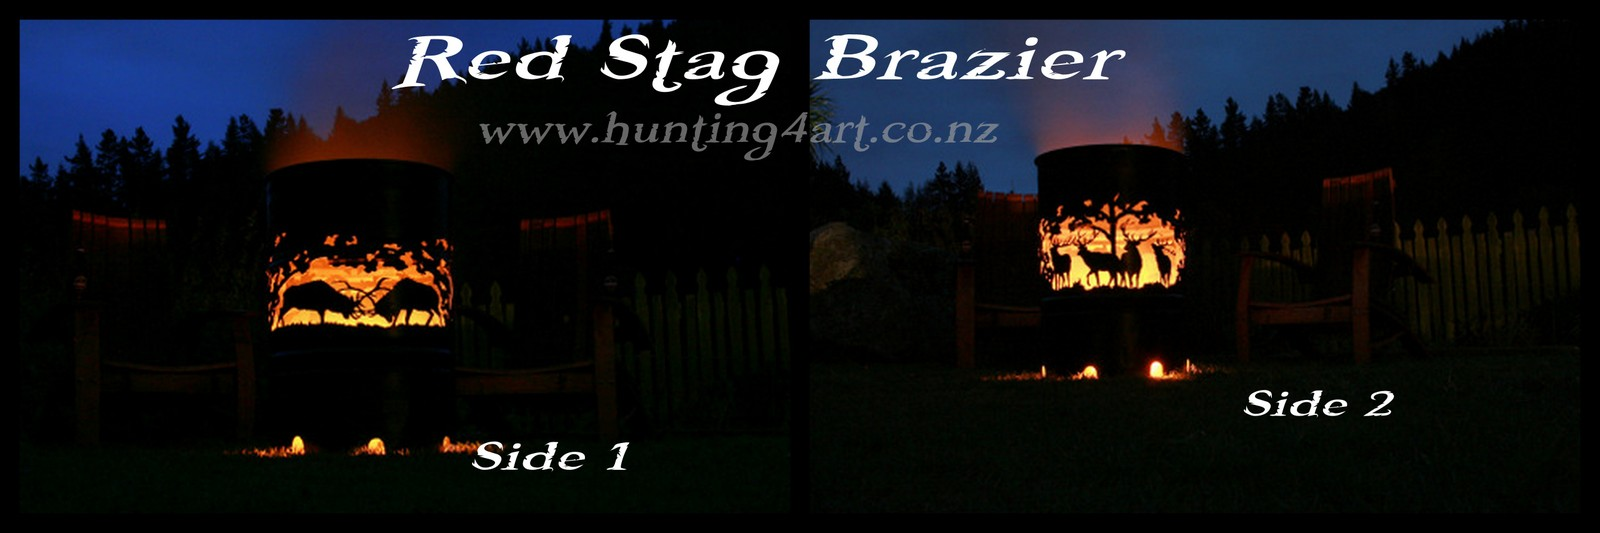 RED STAG BRAZIER